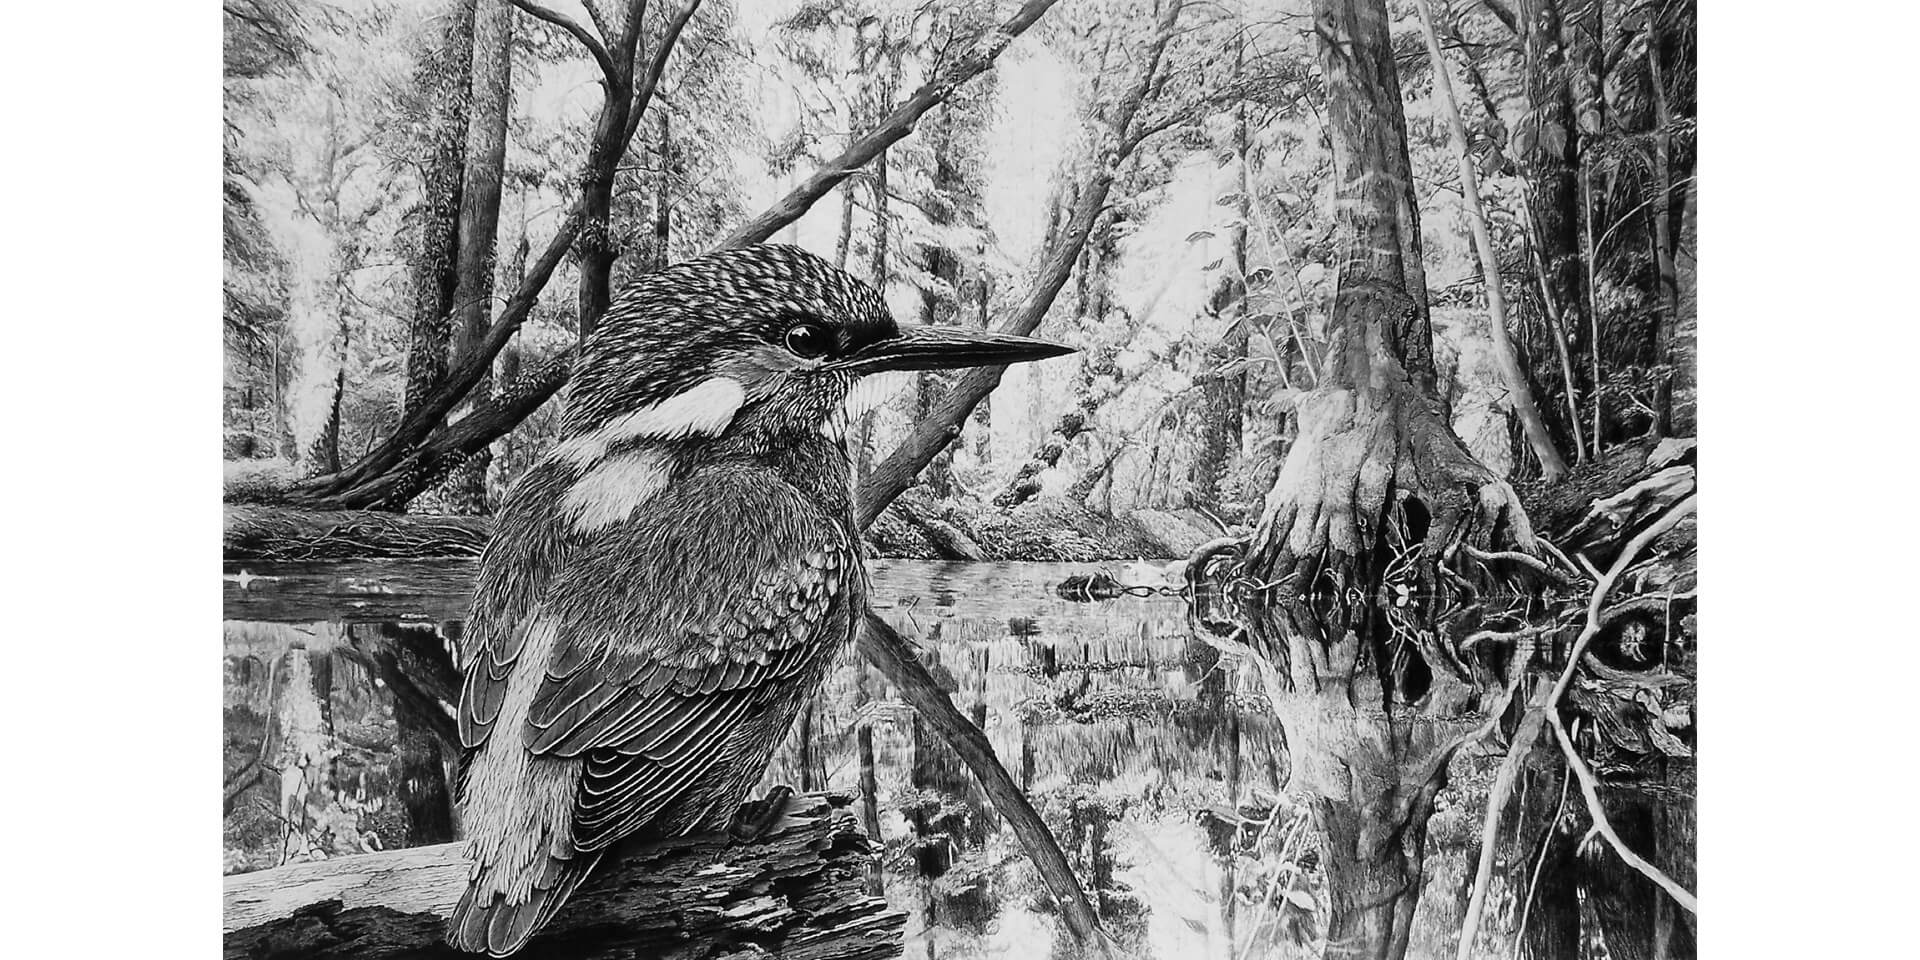 Young Kingfisher, Bleistift, 125x180 cm, 2013